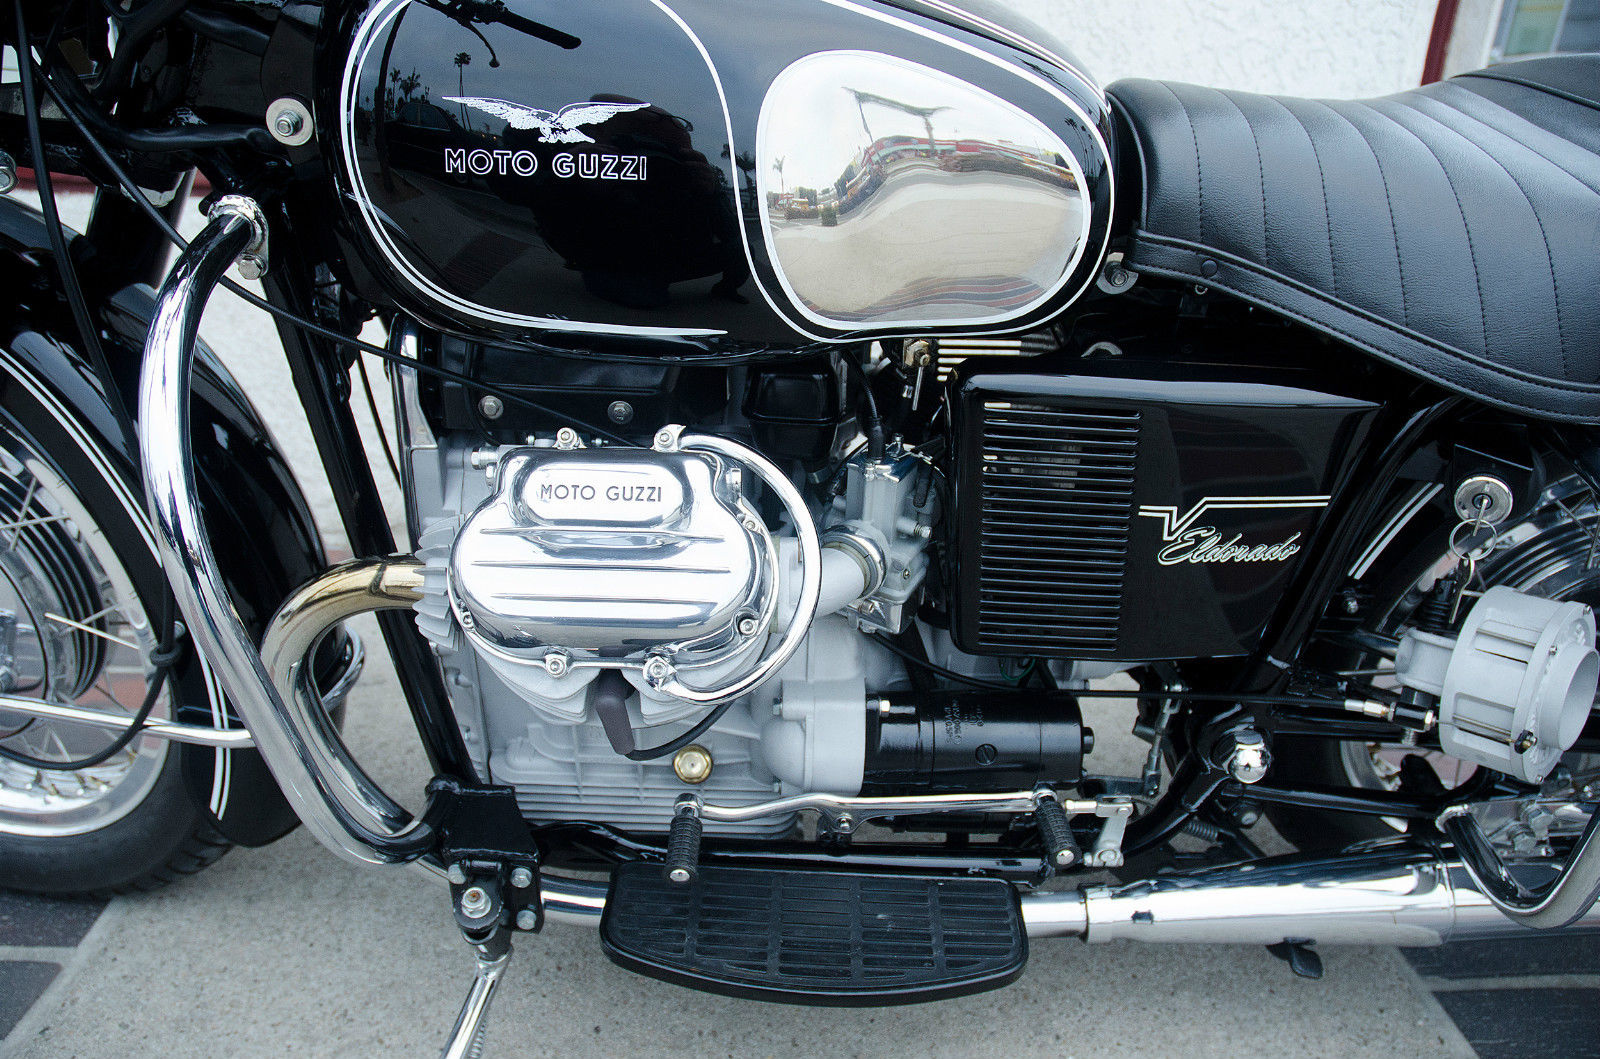 Giulio Cesare Carcano's 90° V twin began life in 1959 with a capacity of 754cc.